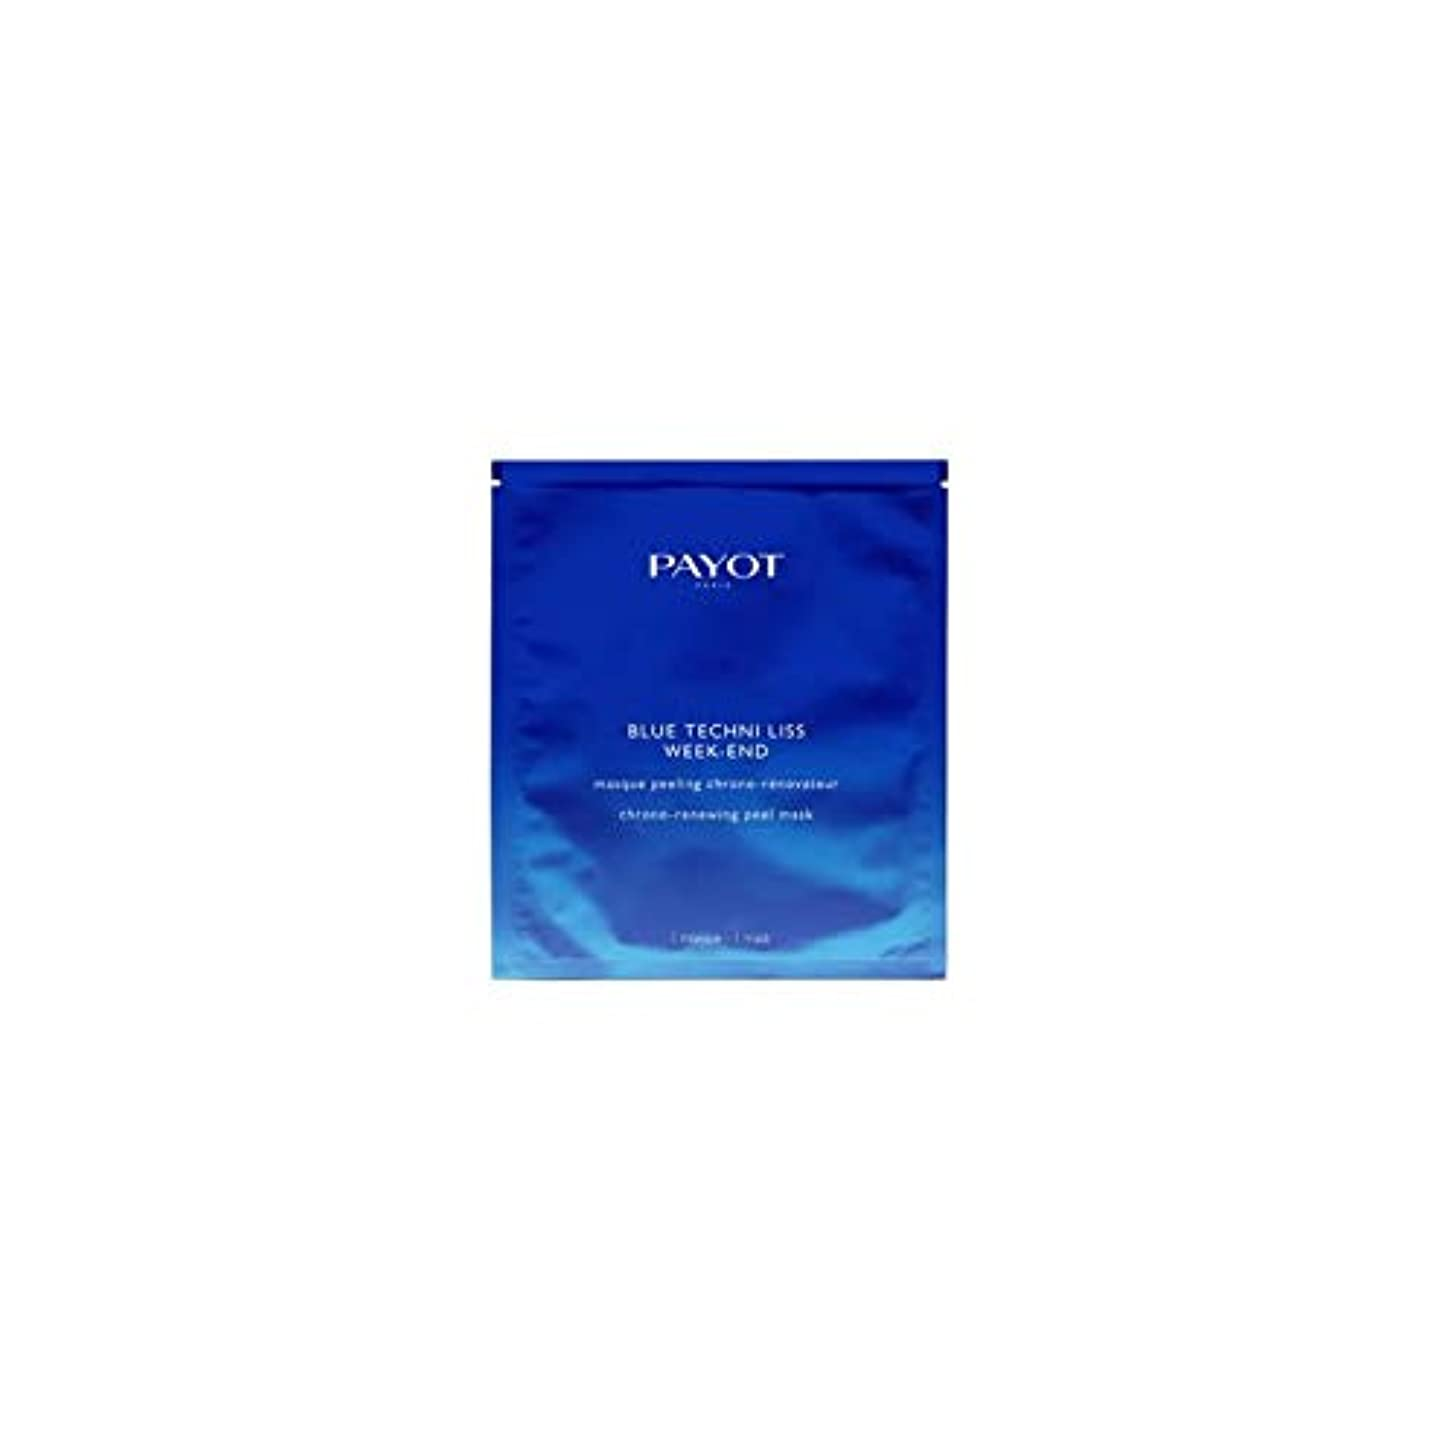 縮約ラジウム小康パイヨ Blue Techni Liss Week-End Chrono-Renewing Peel Mask 10pcs並行輸入品